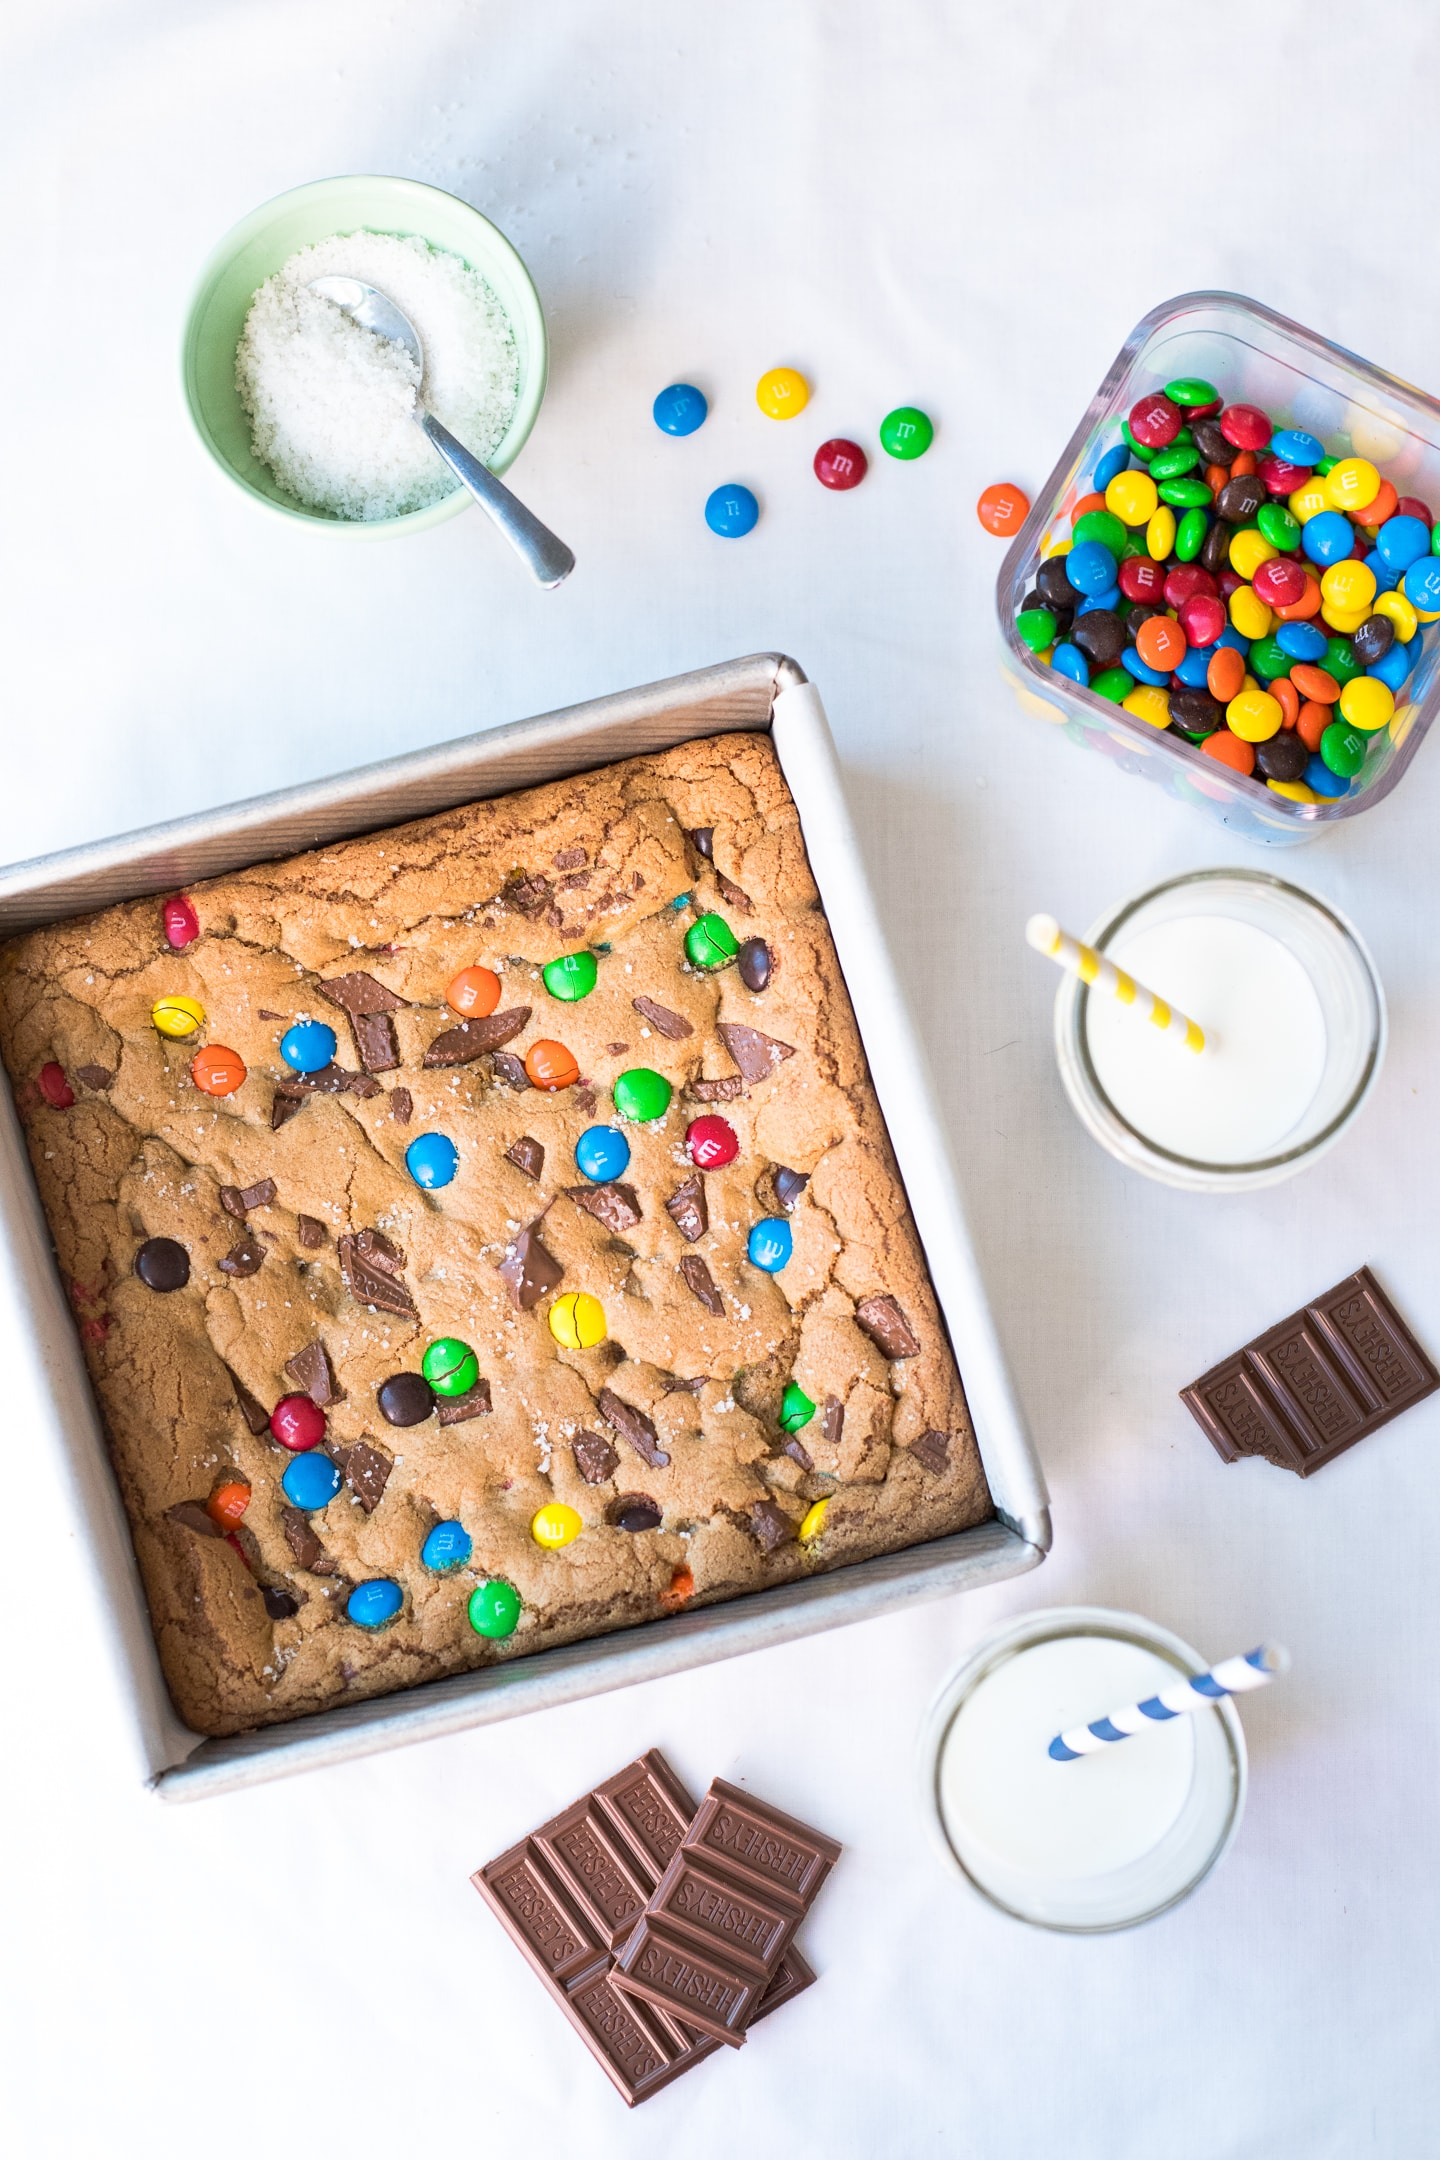 Overhead view of Salted Candy Bar Blondies in a baking pan, with glasses of milk, candy, and a bowl of fleur de sel on the side.